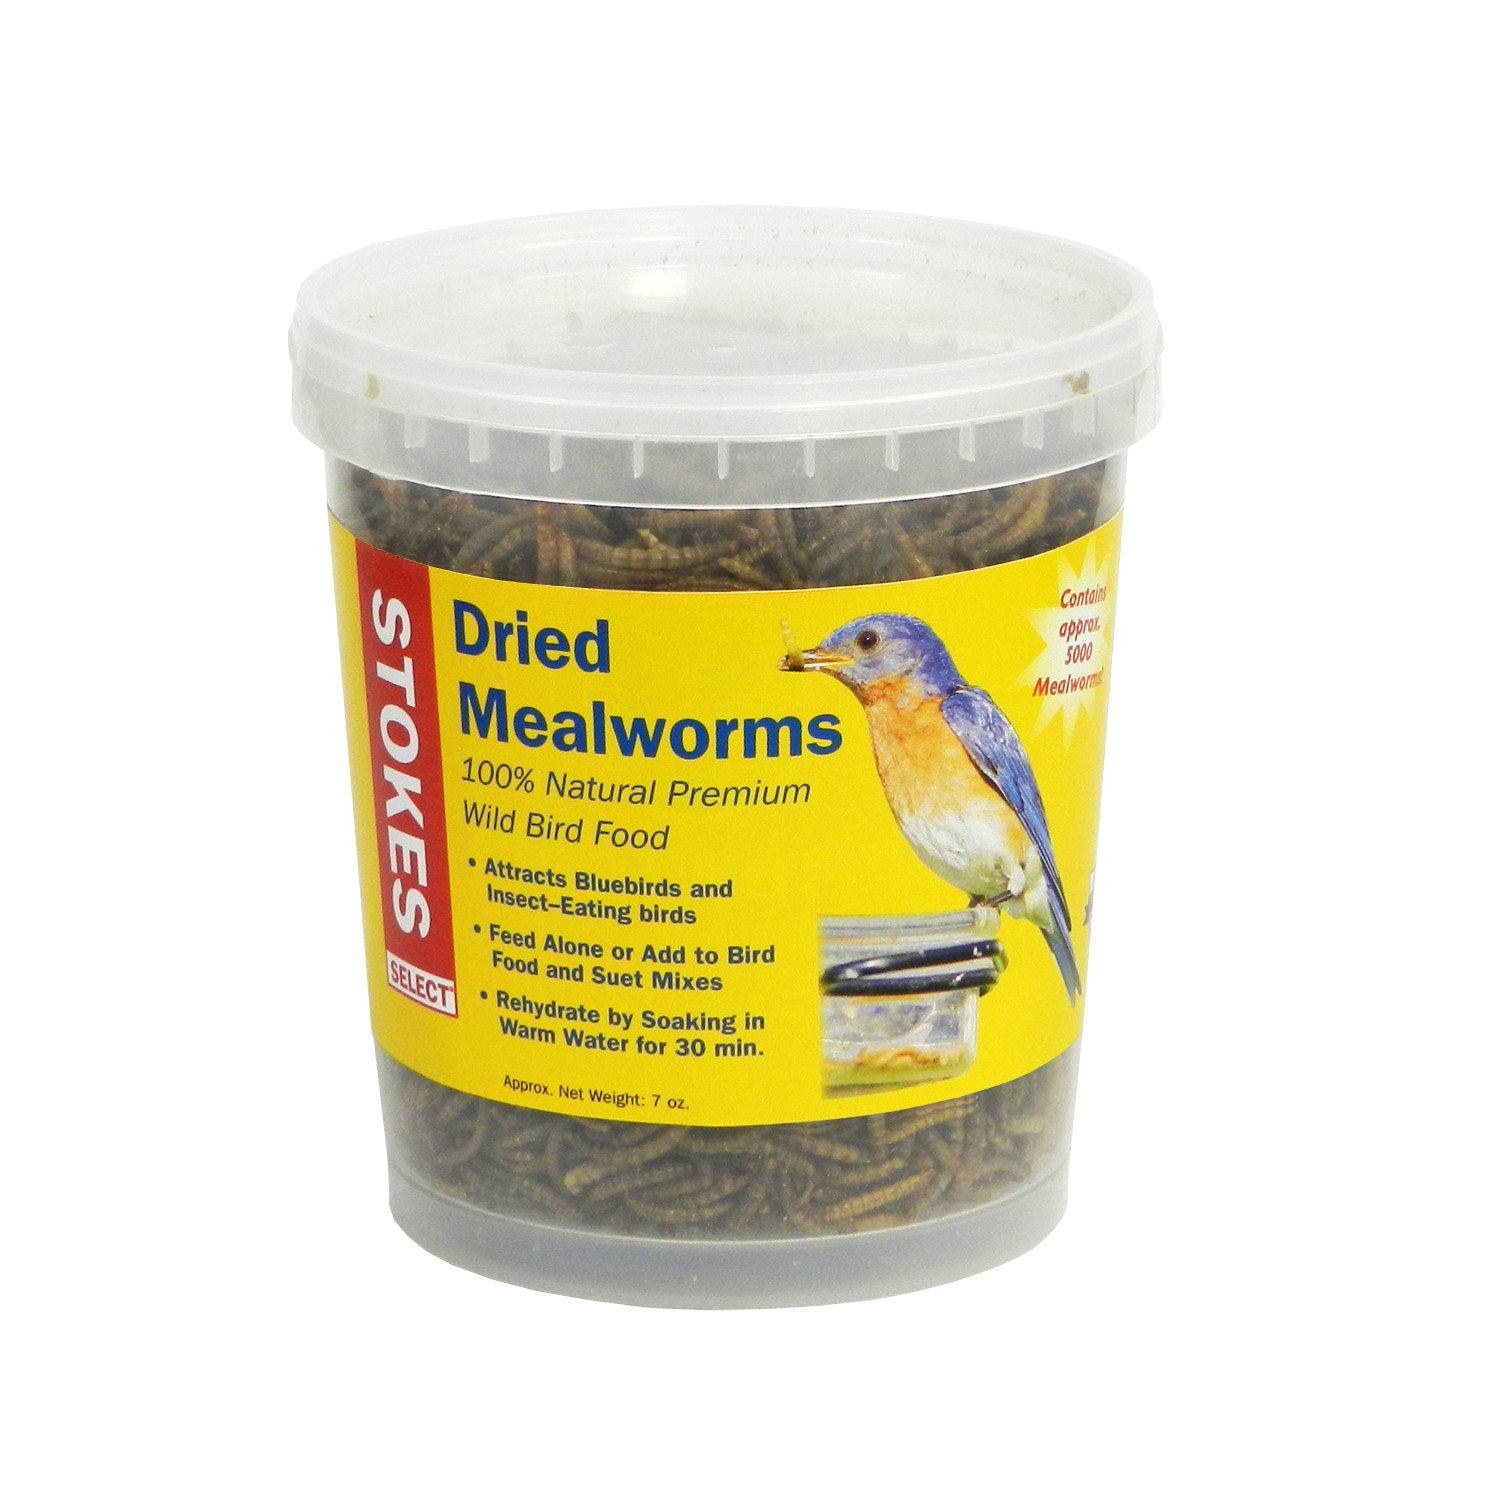 Stokes Select 100% Natural Premium Dried Mealworms, 7 oz. Tub by Stokes Select